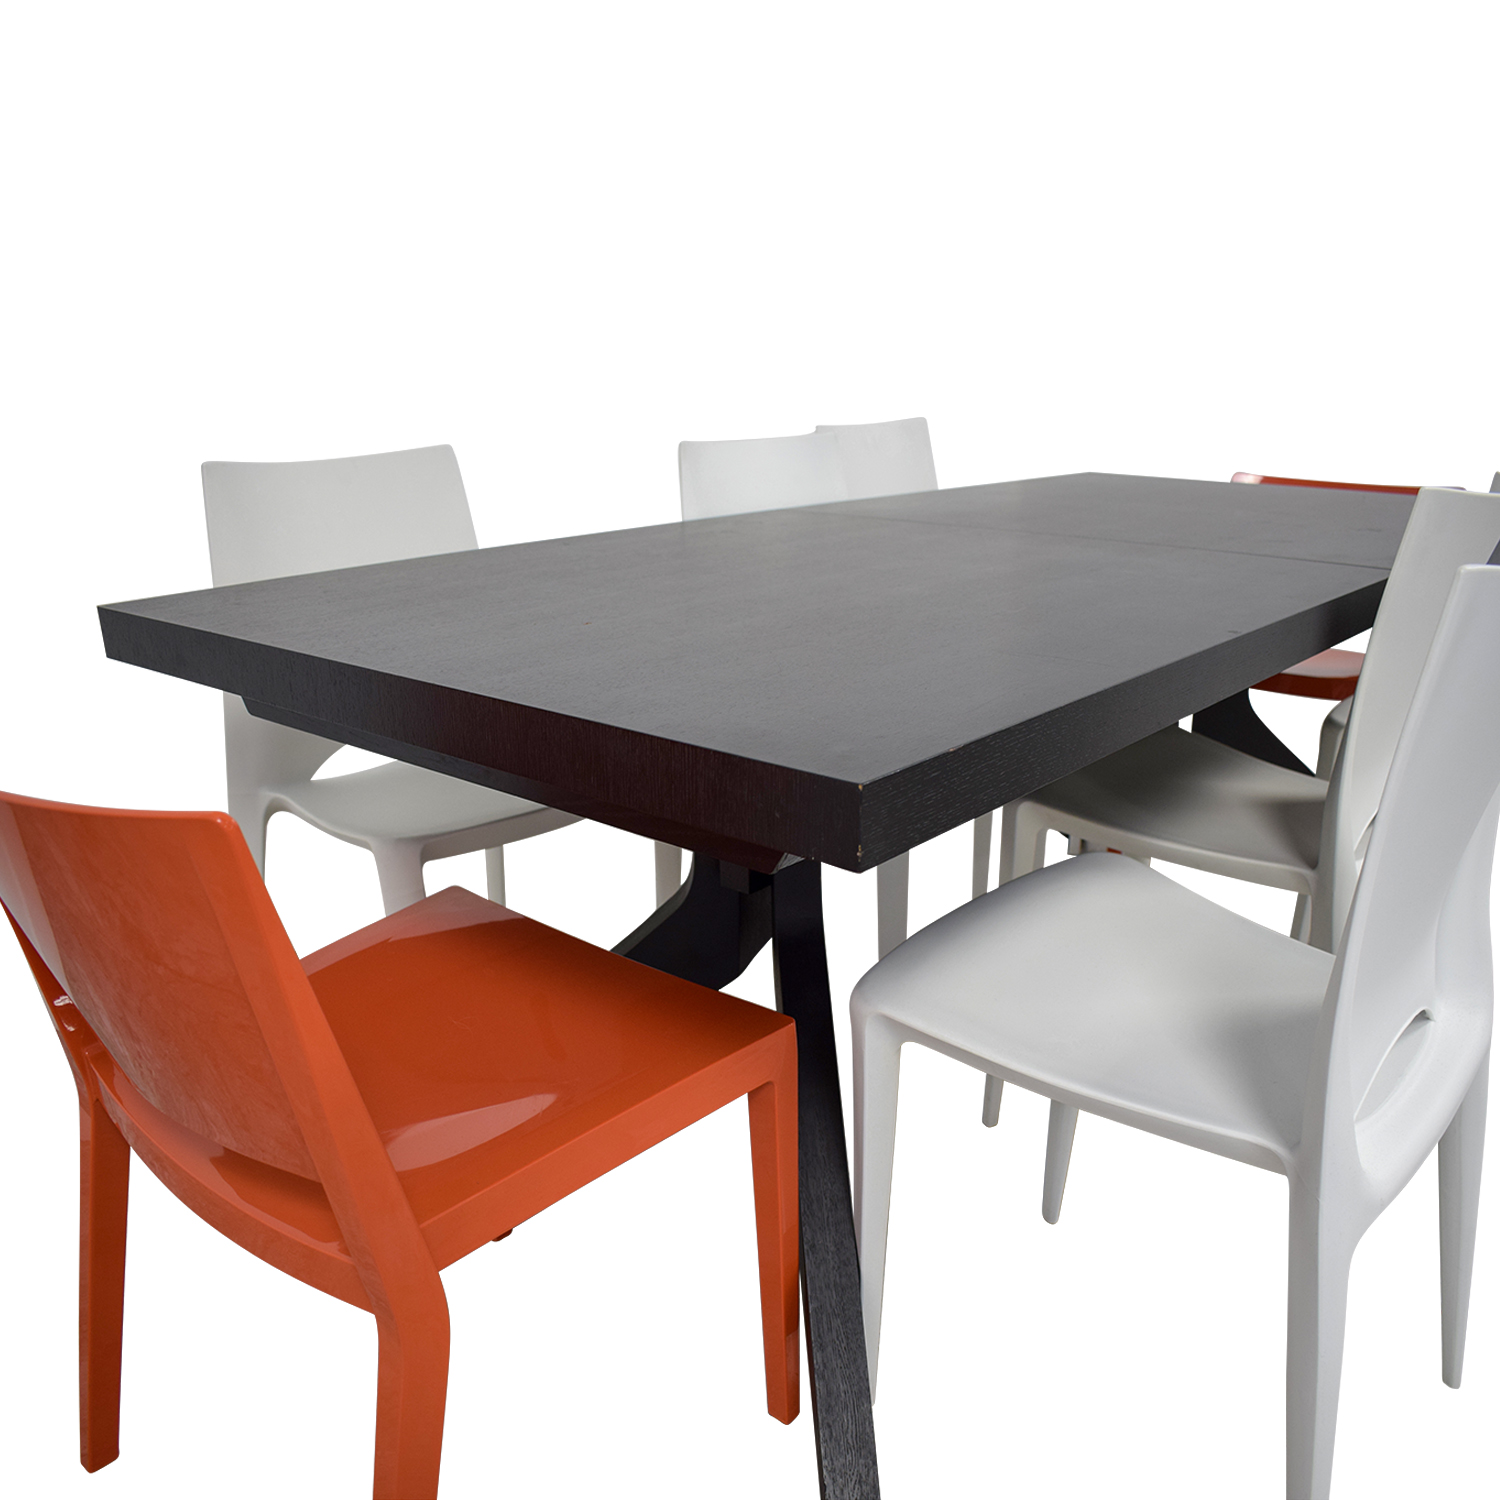 Design Within Reach Wood Extendable Table with White and Orange Chairs used